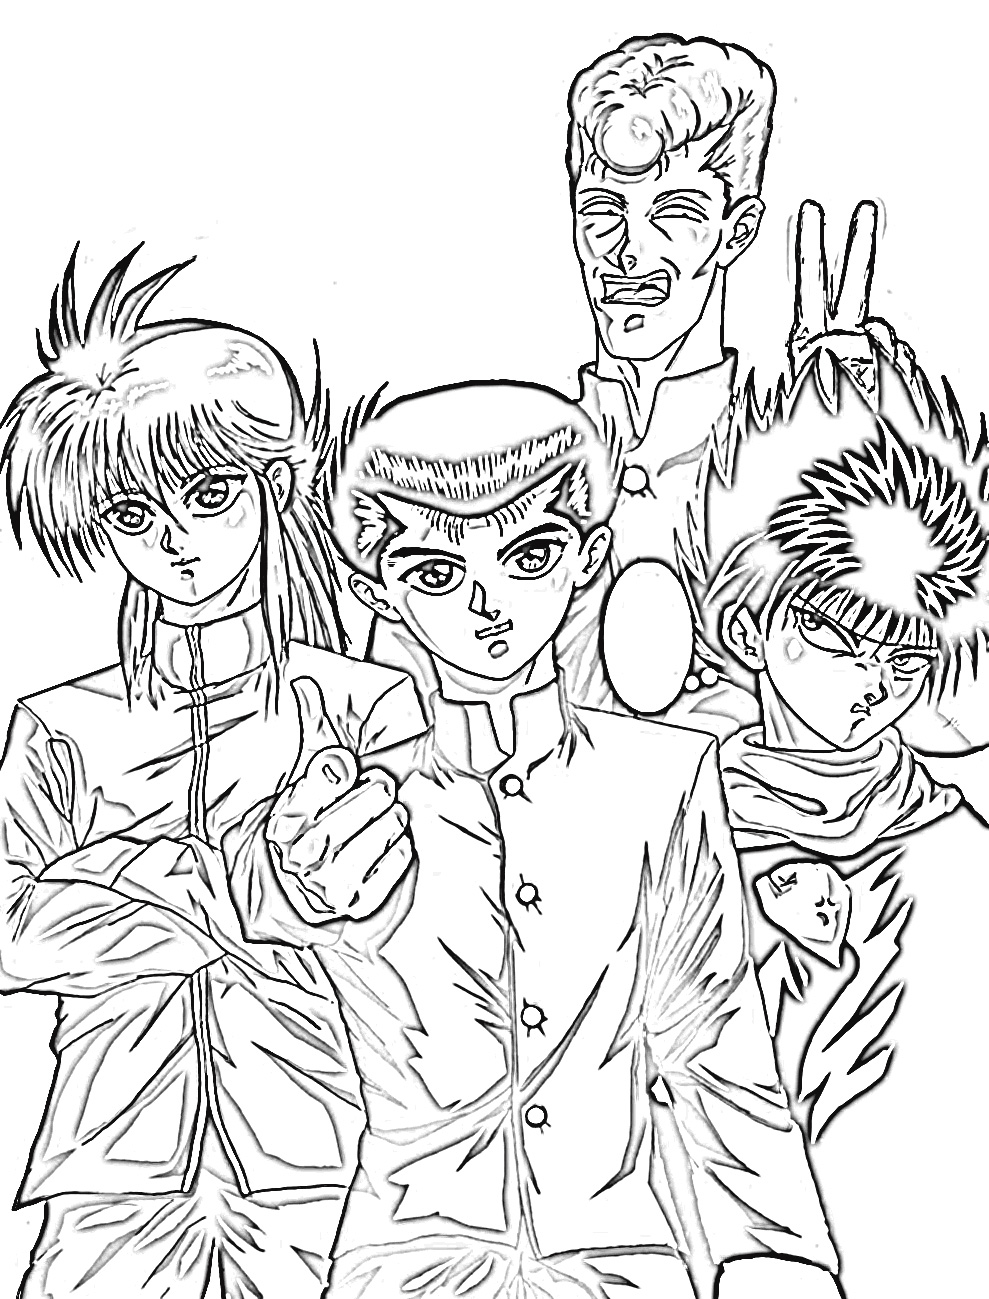 yu yu hakusho coloring pages